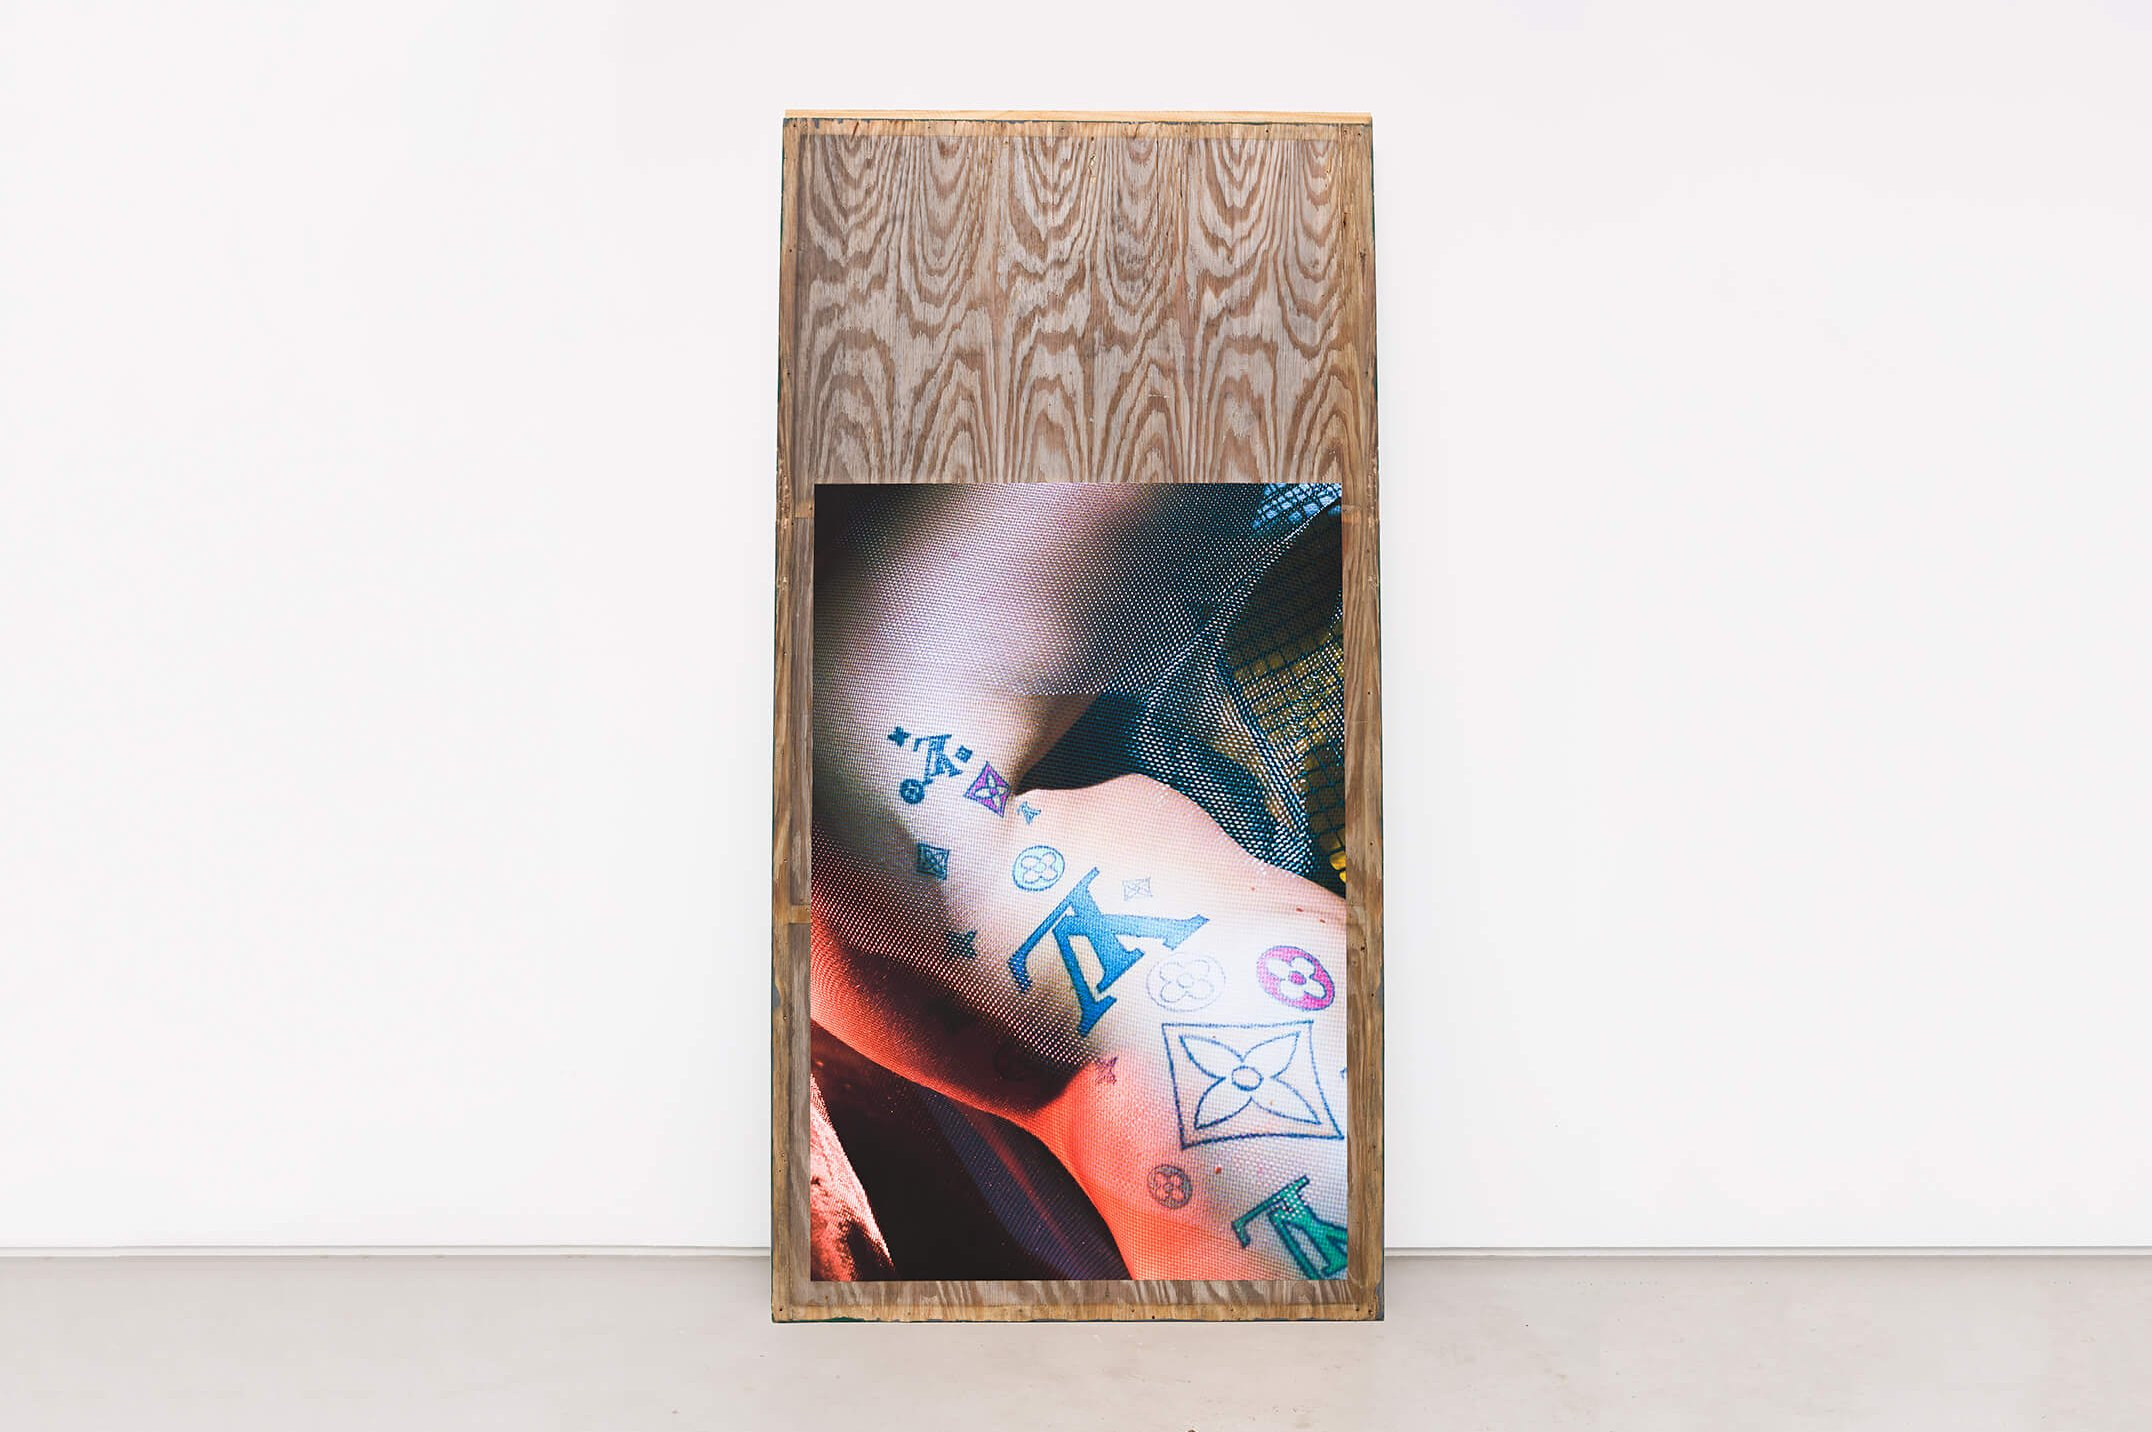 Stewart Uoo, <em>Untitled (Car Plywood)</em>, 2015, archival pigment print on cotton paper, salvaged plywood, latex paint, 244 × 122 × 1 cm - Mendes Wood DM